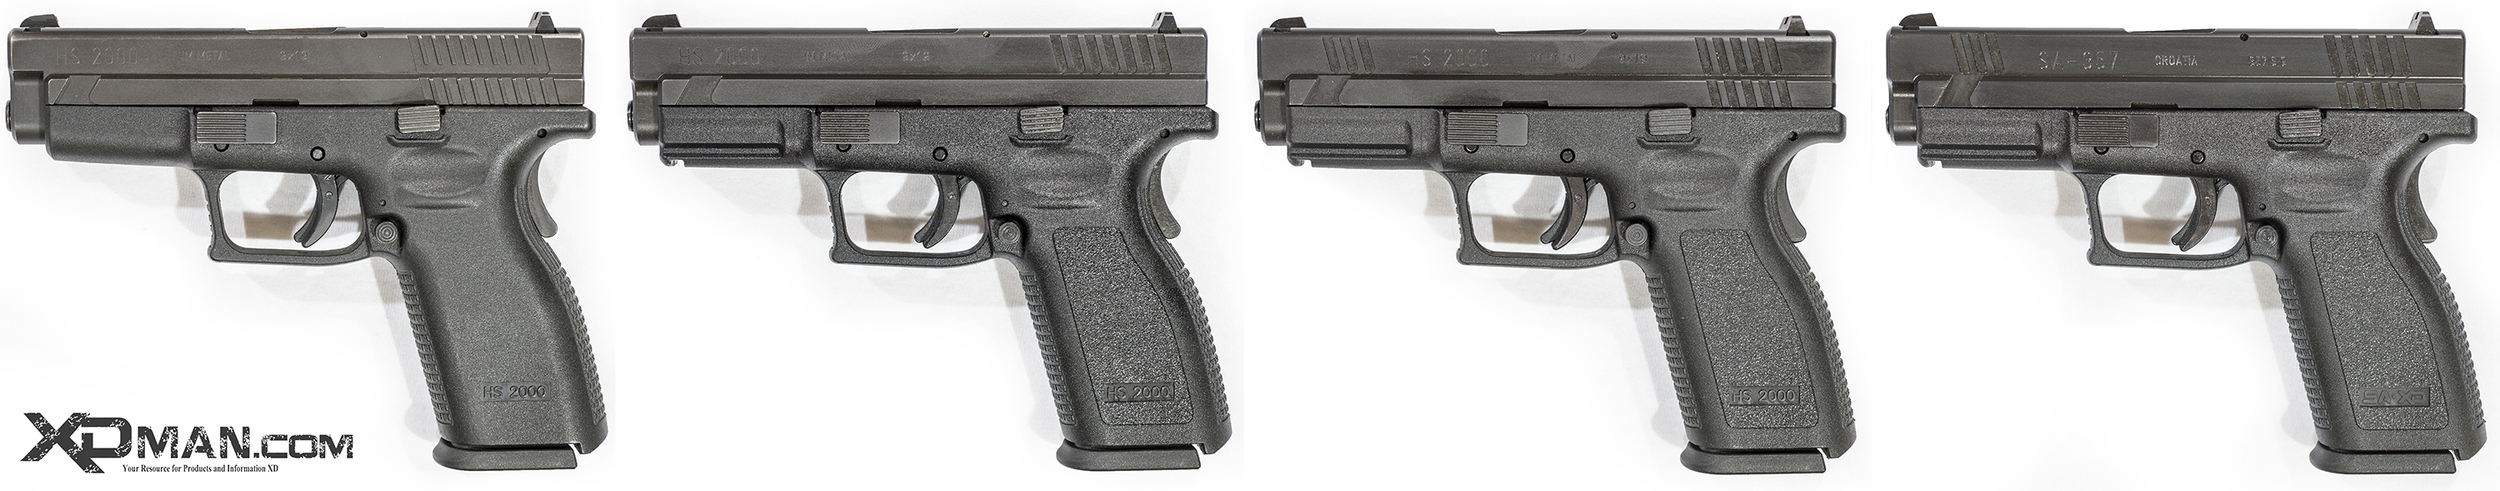 Above are generations 1-3 of the HS2000 pistols, with the last being an SA-357 that was essentially the precursor of the XD Pistol. The generation 0 pistols were never imported into the U.S. and is not pictured.